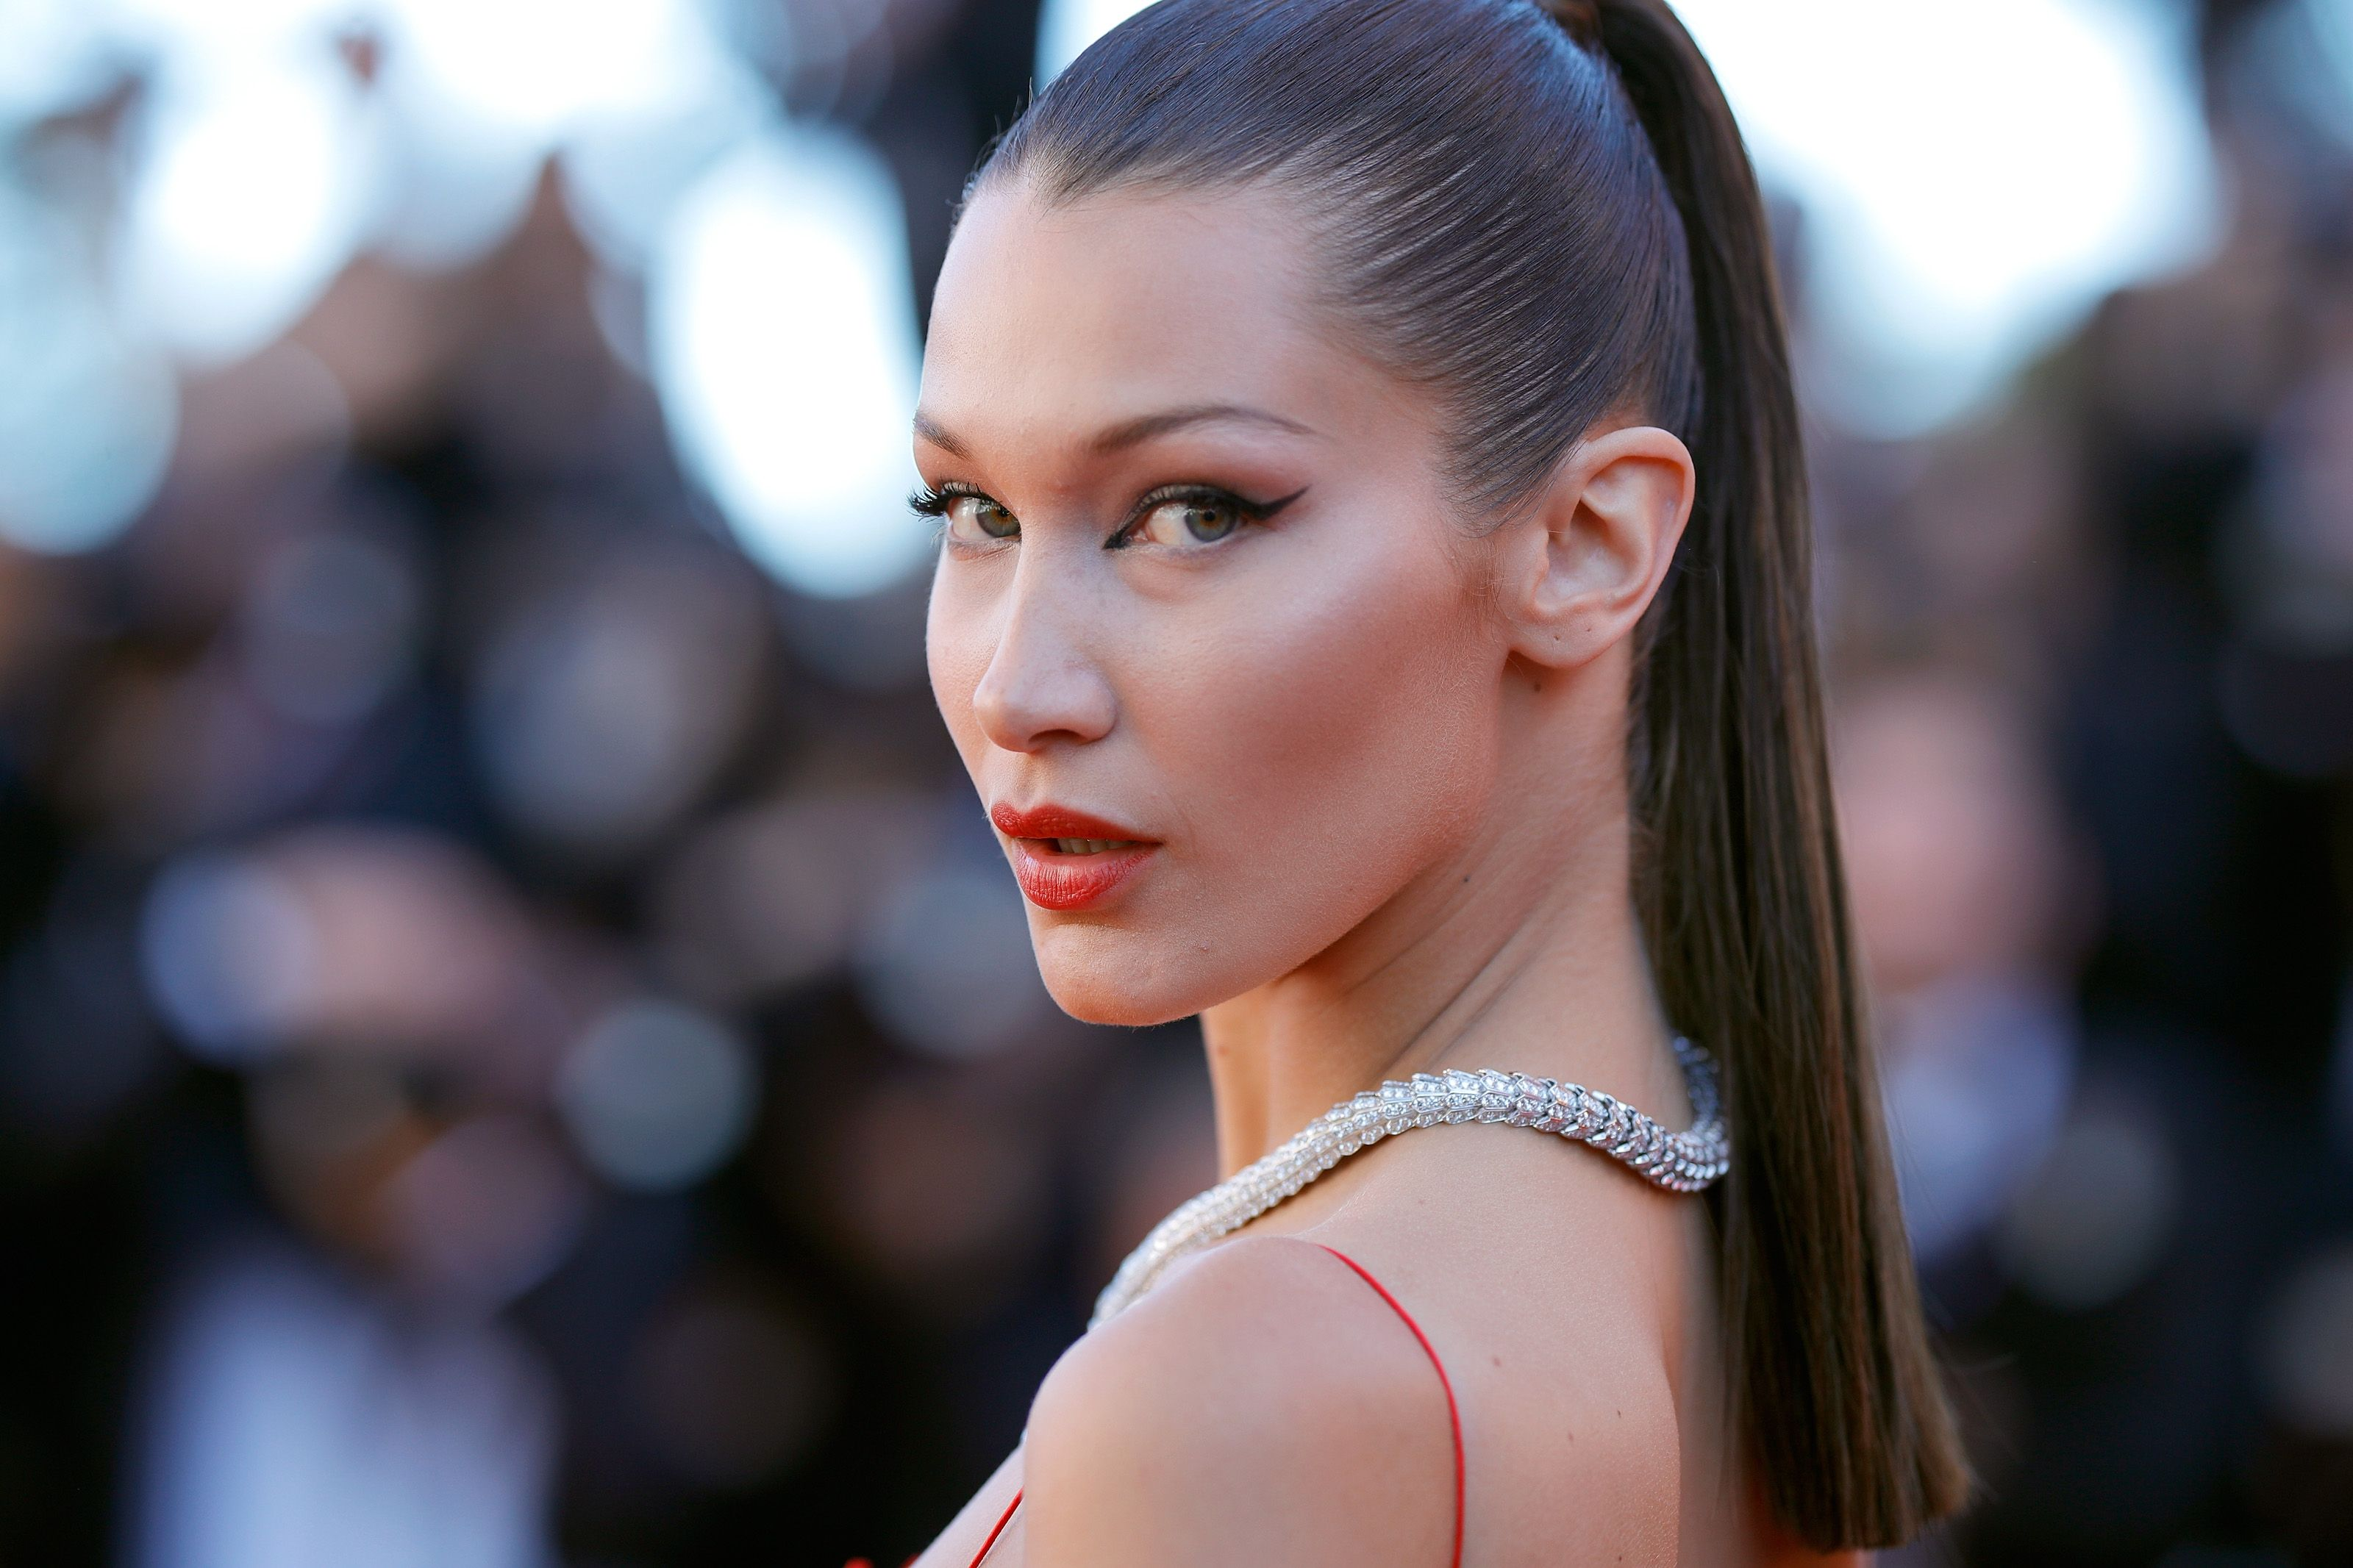 Bella Hadid's face measured for physical perfection by a Harley Street surgeon